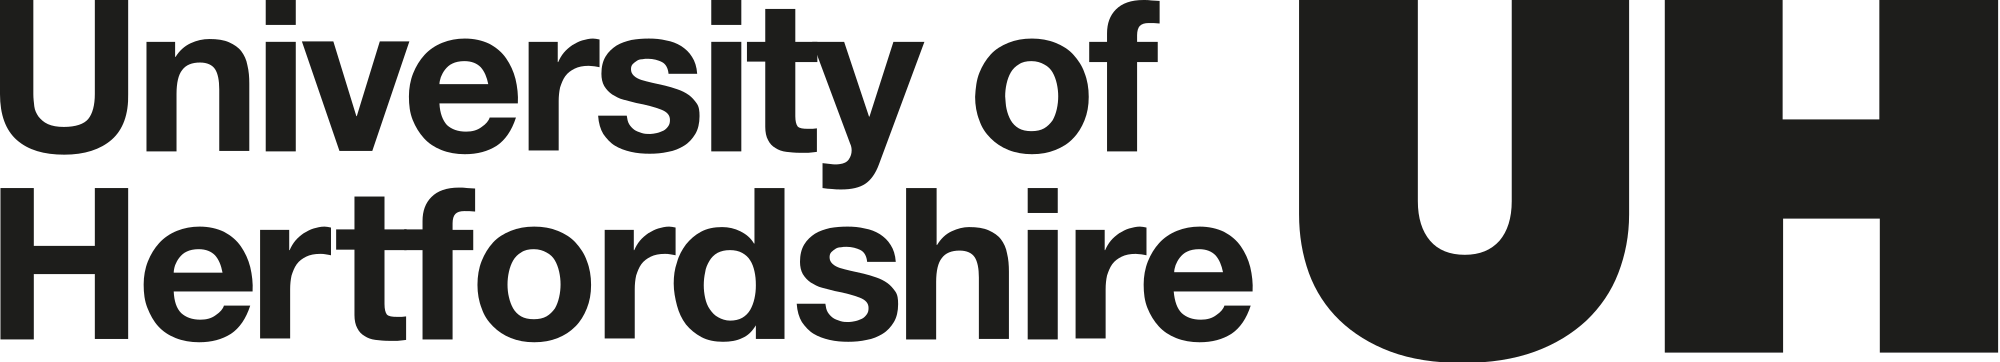 University_of_Hertfordshire_Logo.svg